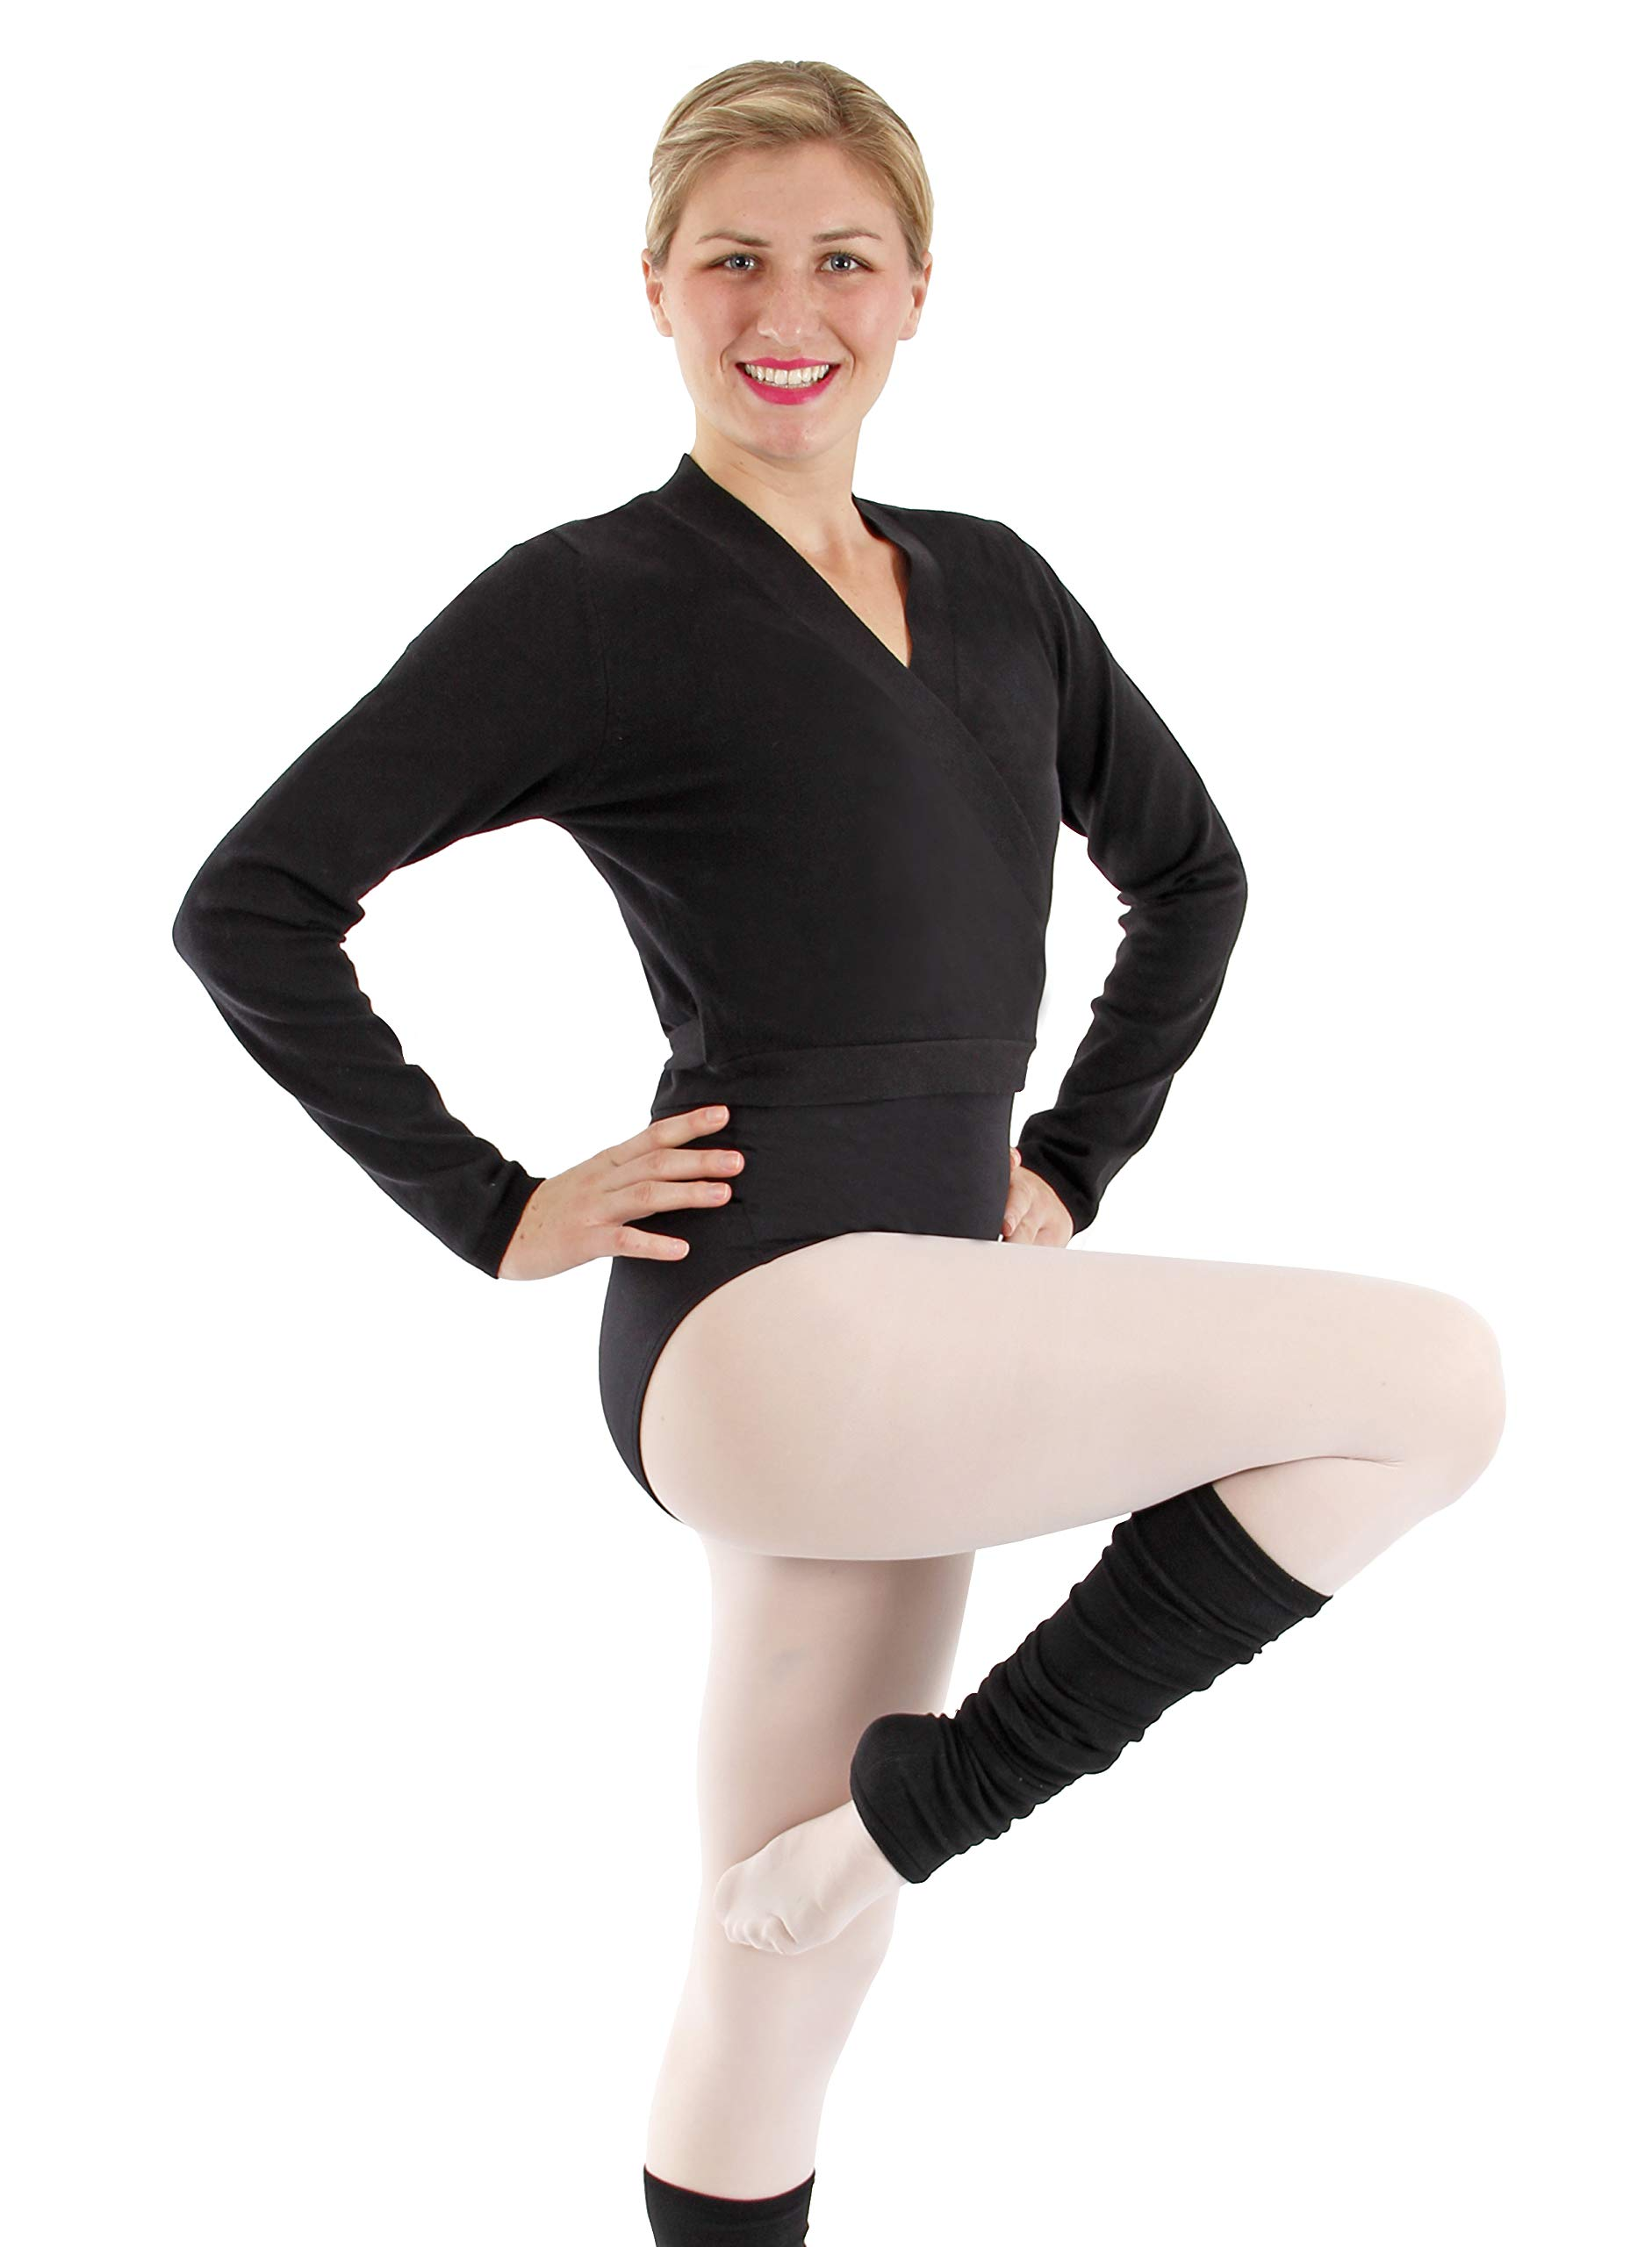 Basic Moves Cotton Blend Wrap Sweater (M/L, Black) by Basic Moves